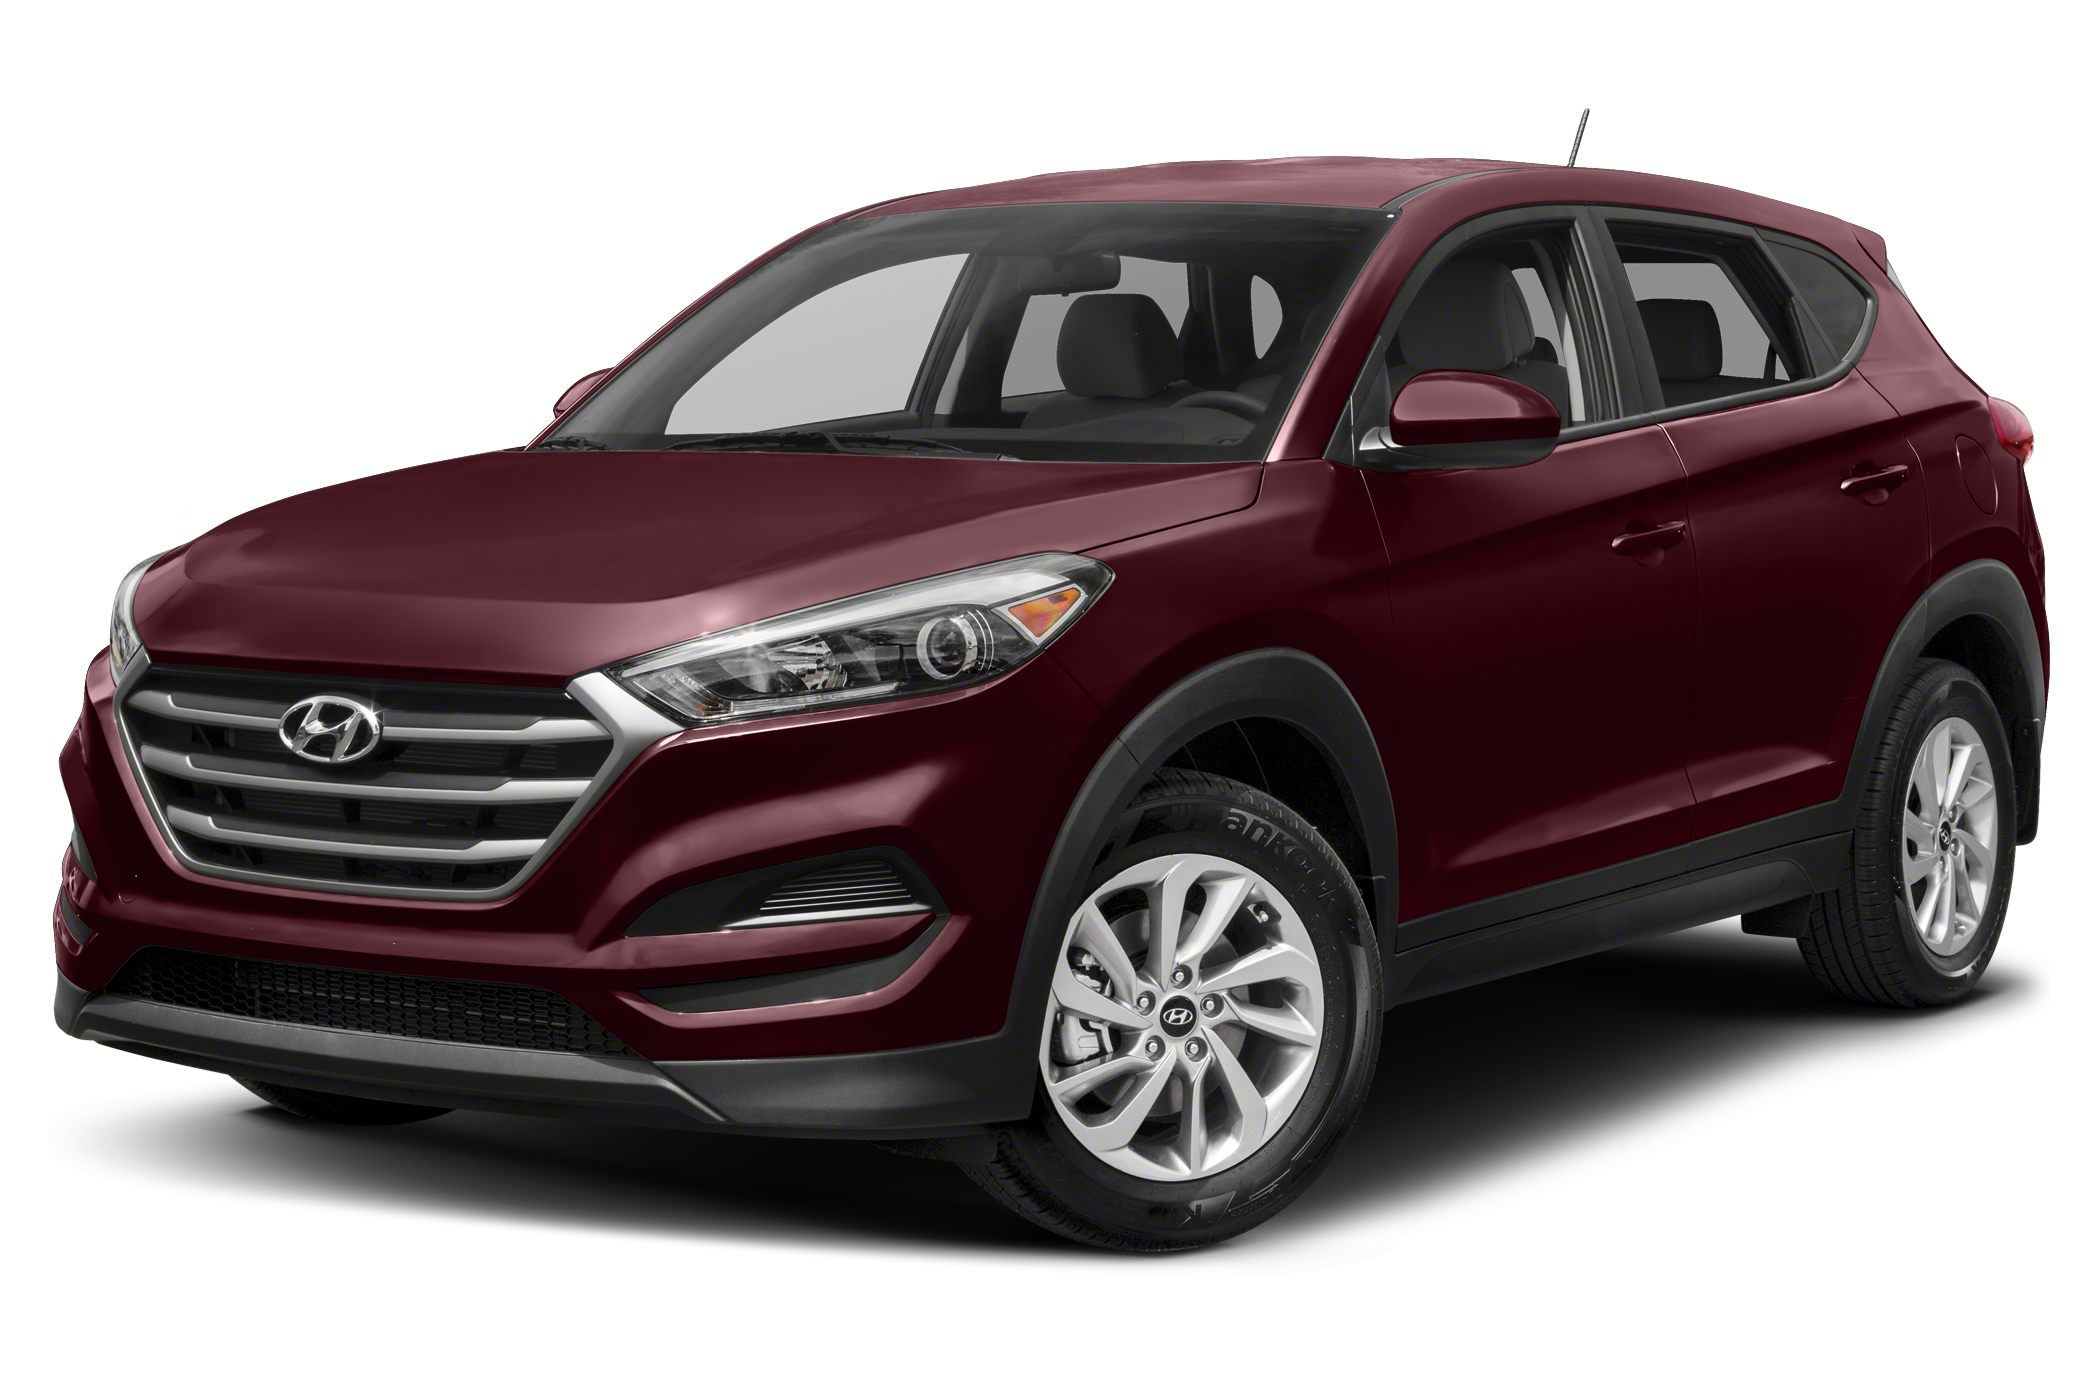 Hyundai Canada Incentives for the new 2021  Tucson SUV Crossover and Tucson Fuel Cell Electric Vehicle in Milton, Toronto, and the GTA